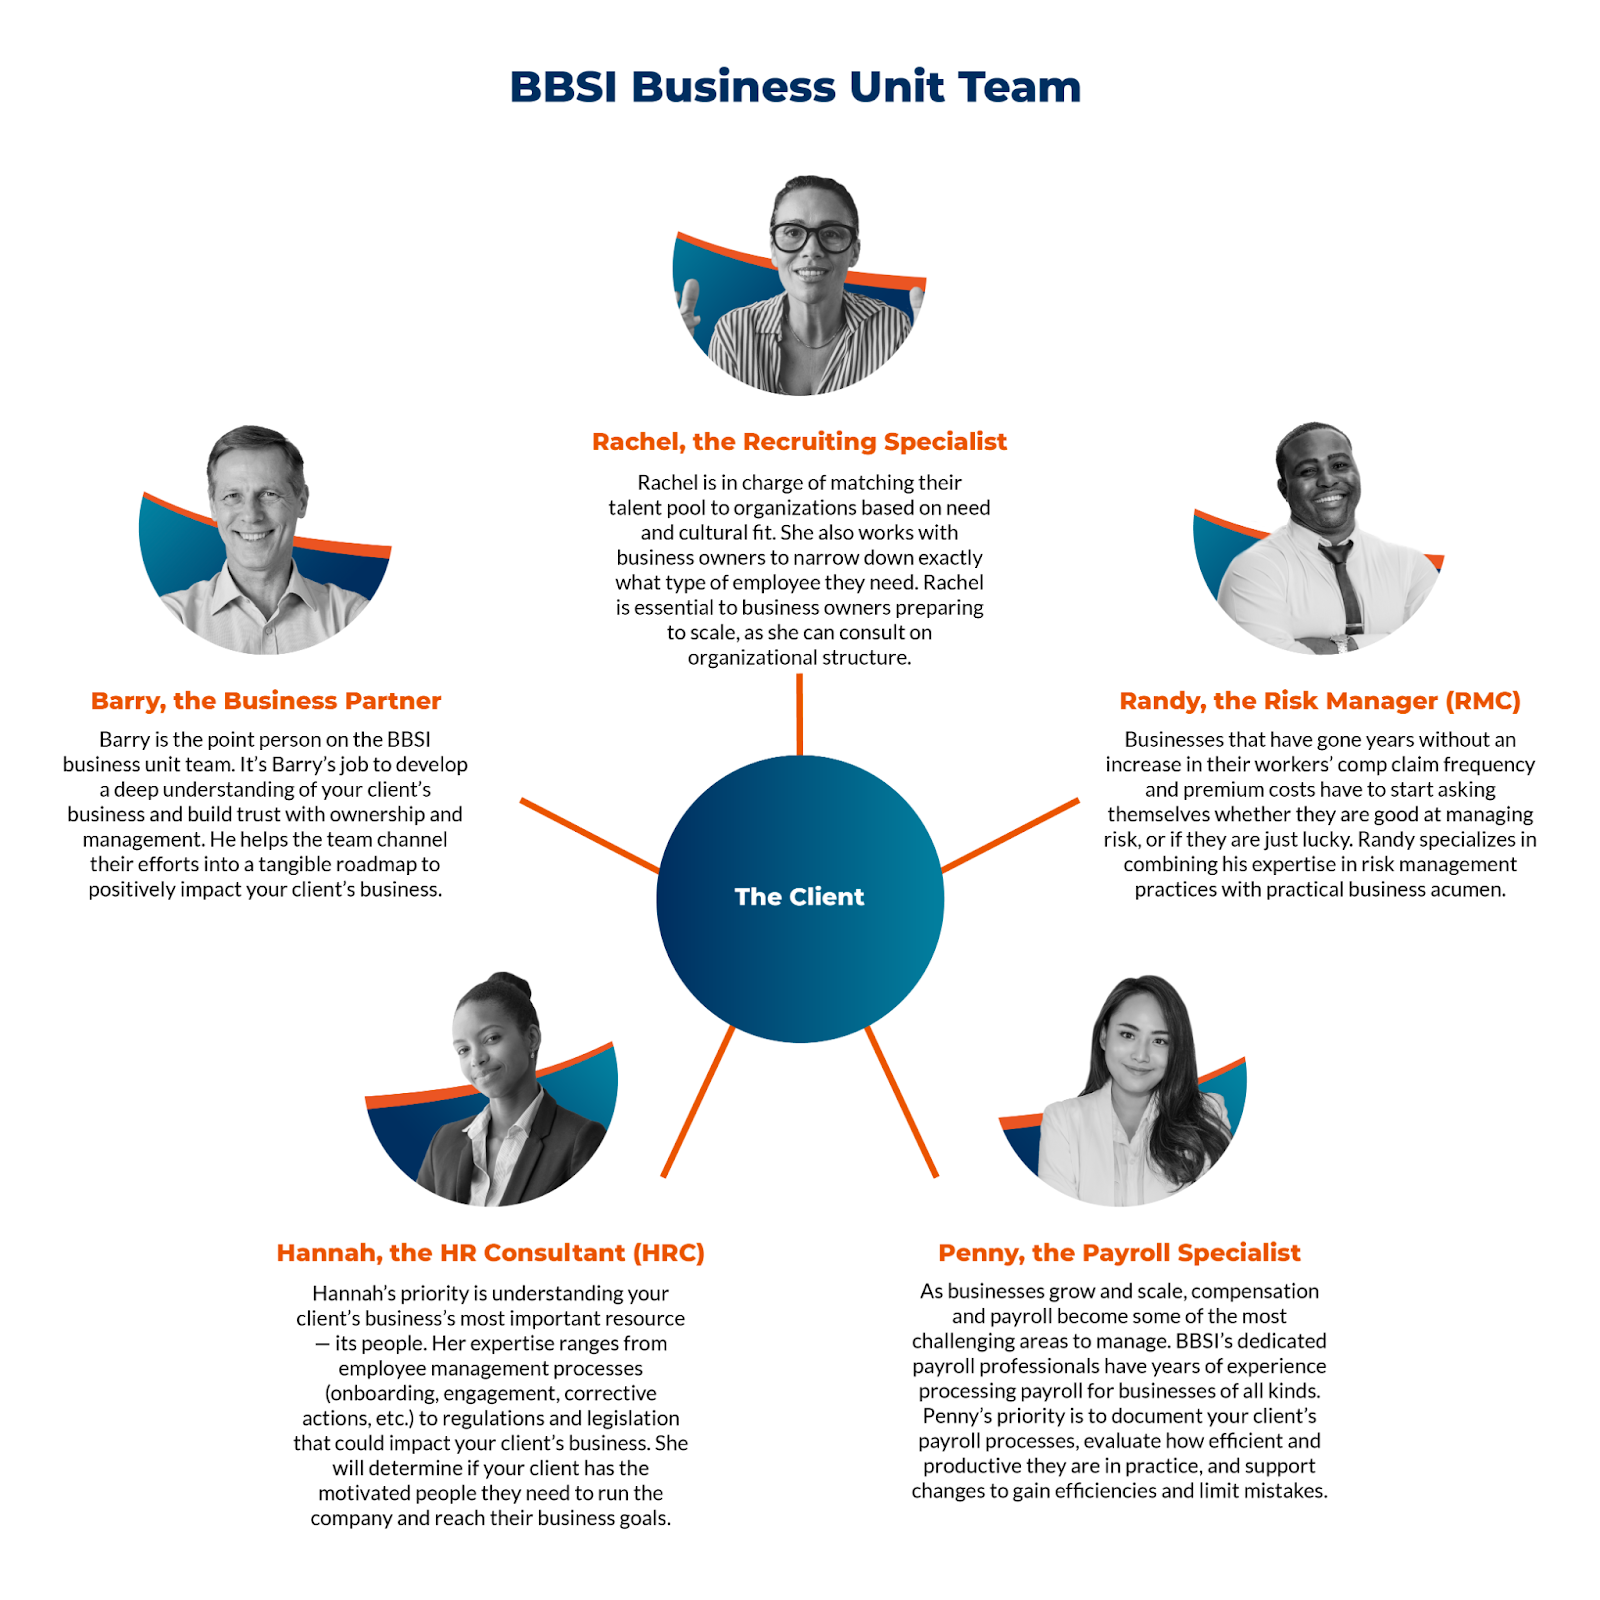 Your BBSI Business Unit Team